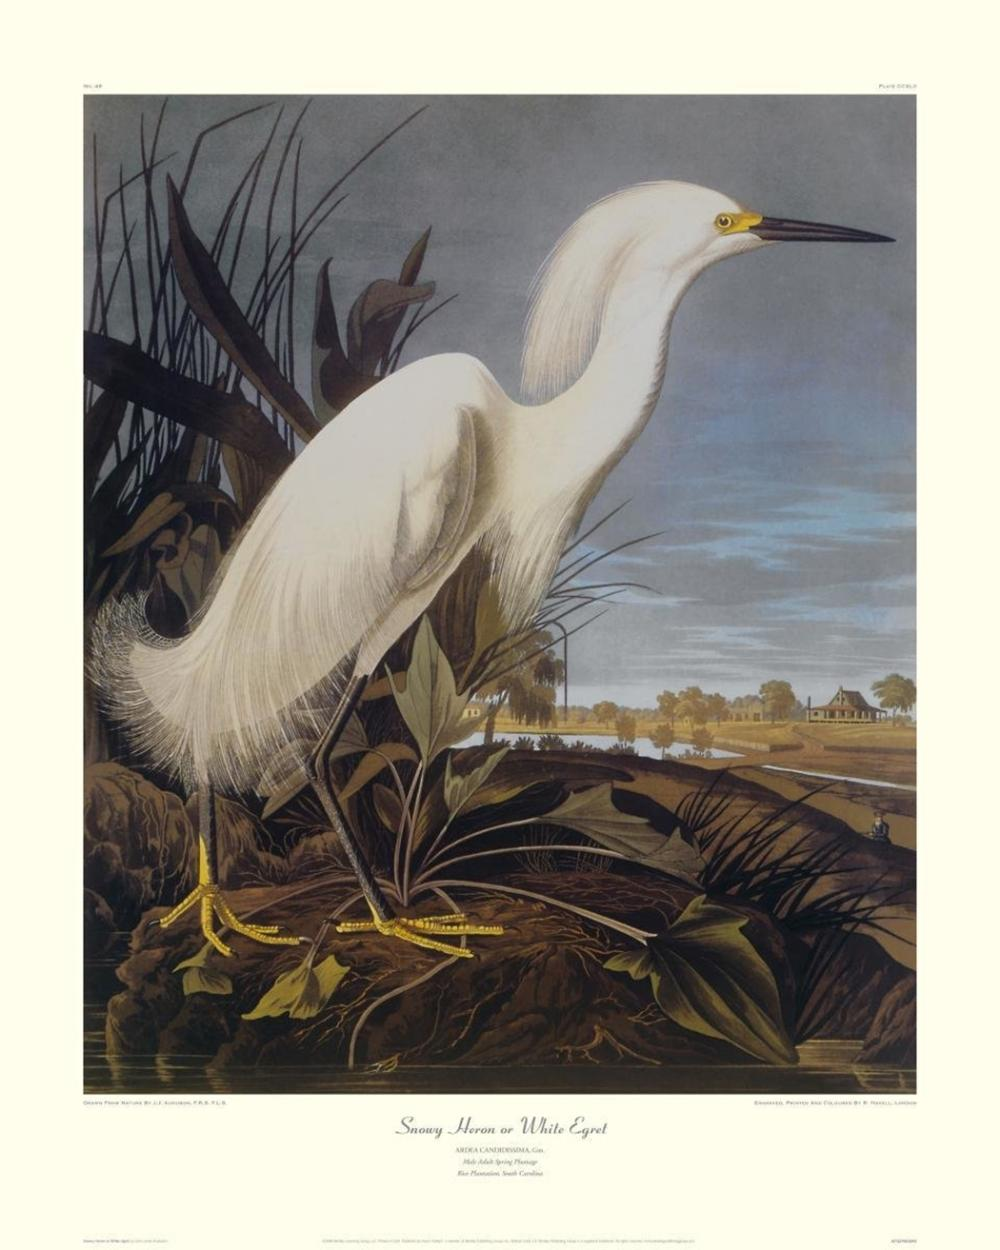 JOHN JAMES AUDUBON - SNOWY HERON OR WHITE EGRET (DECORATIVE BORDER)